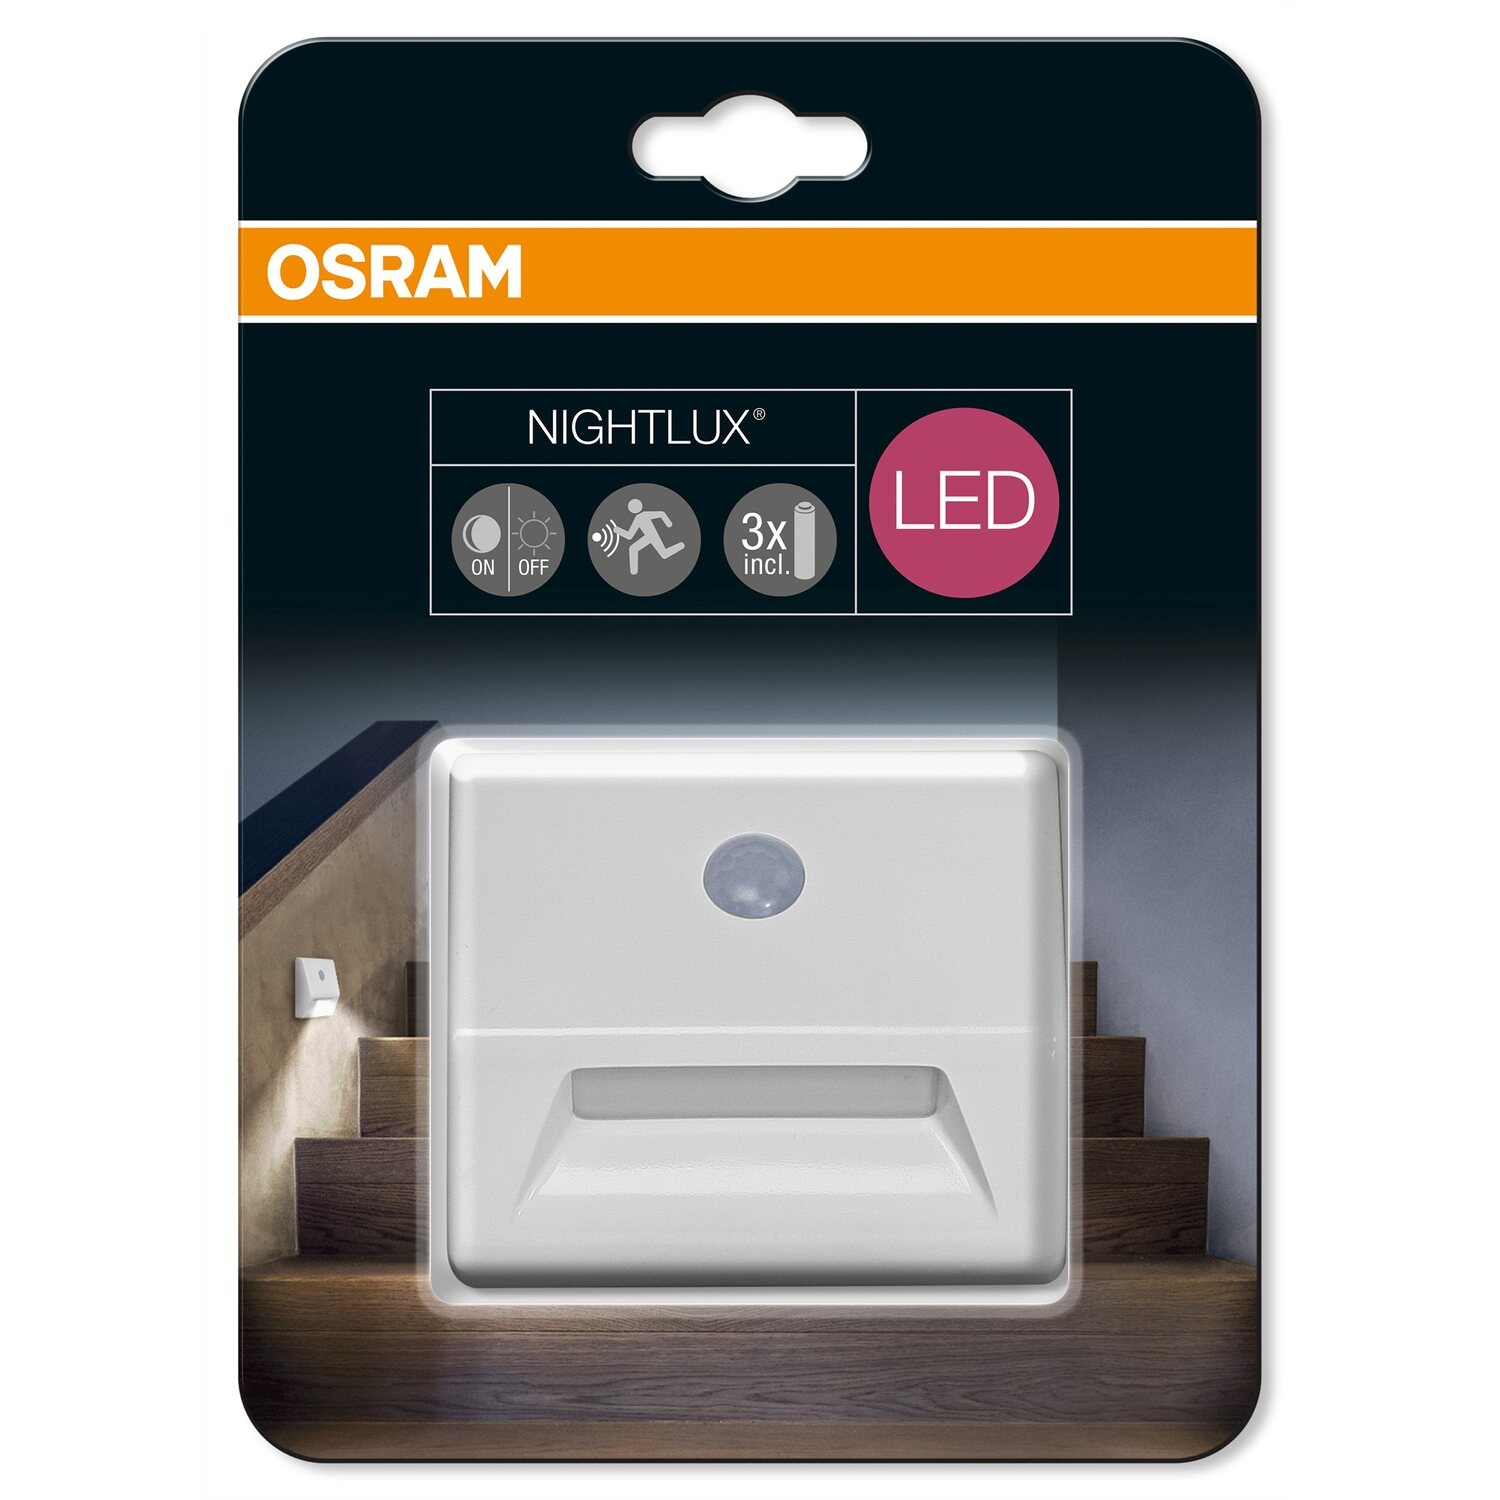 osram led nachtlicht nightlux stair mit sensor weiss kaufen bei obi. Black Bedroom Furniture Sets. Home Design Ideas